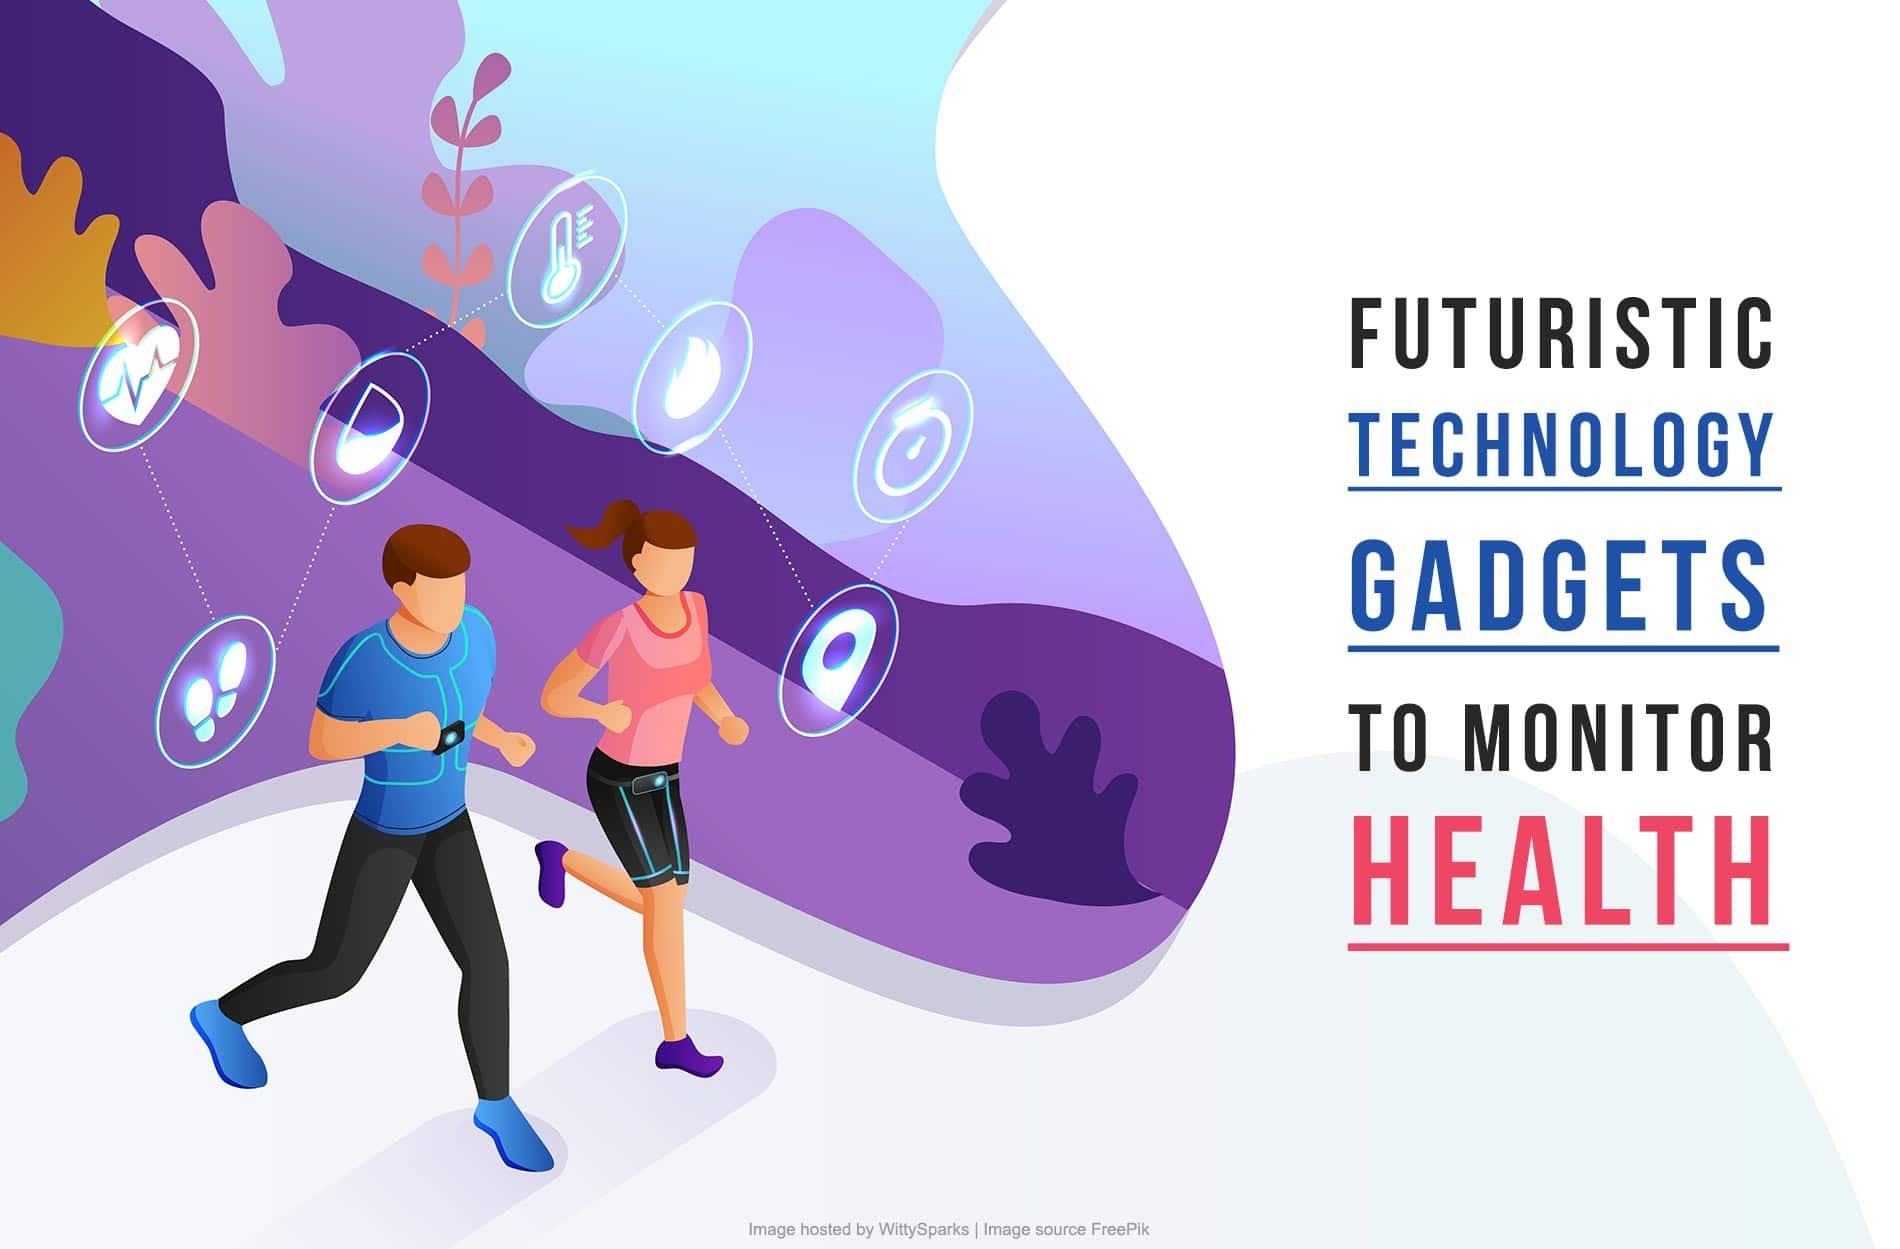 Technology gadgets to monitor health